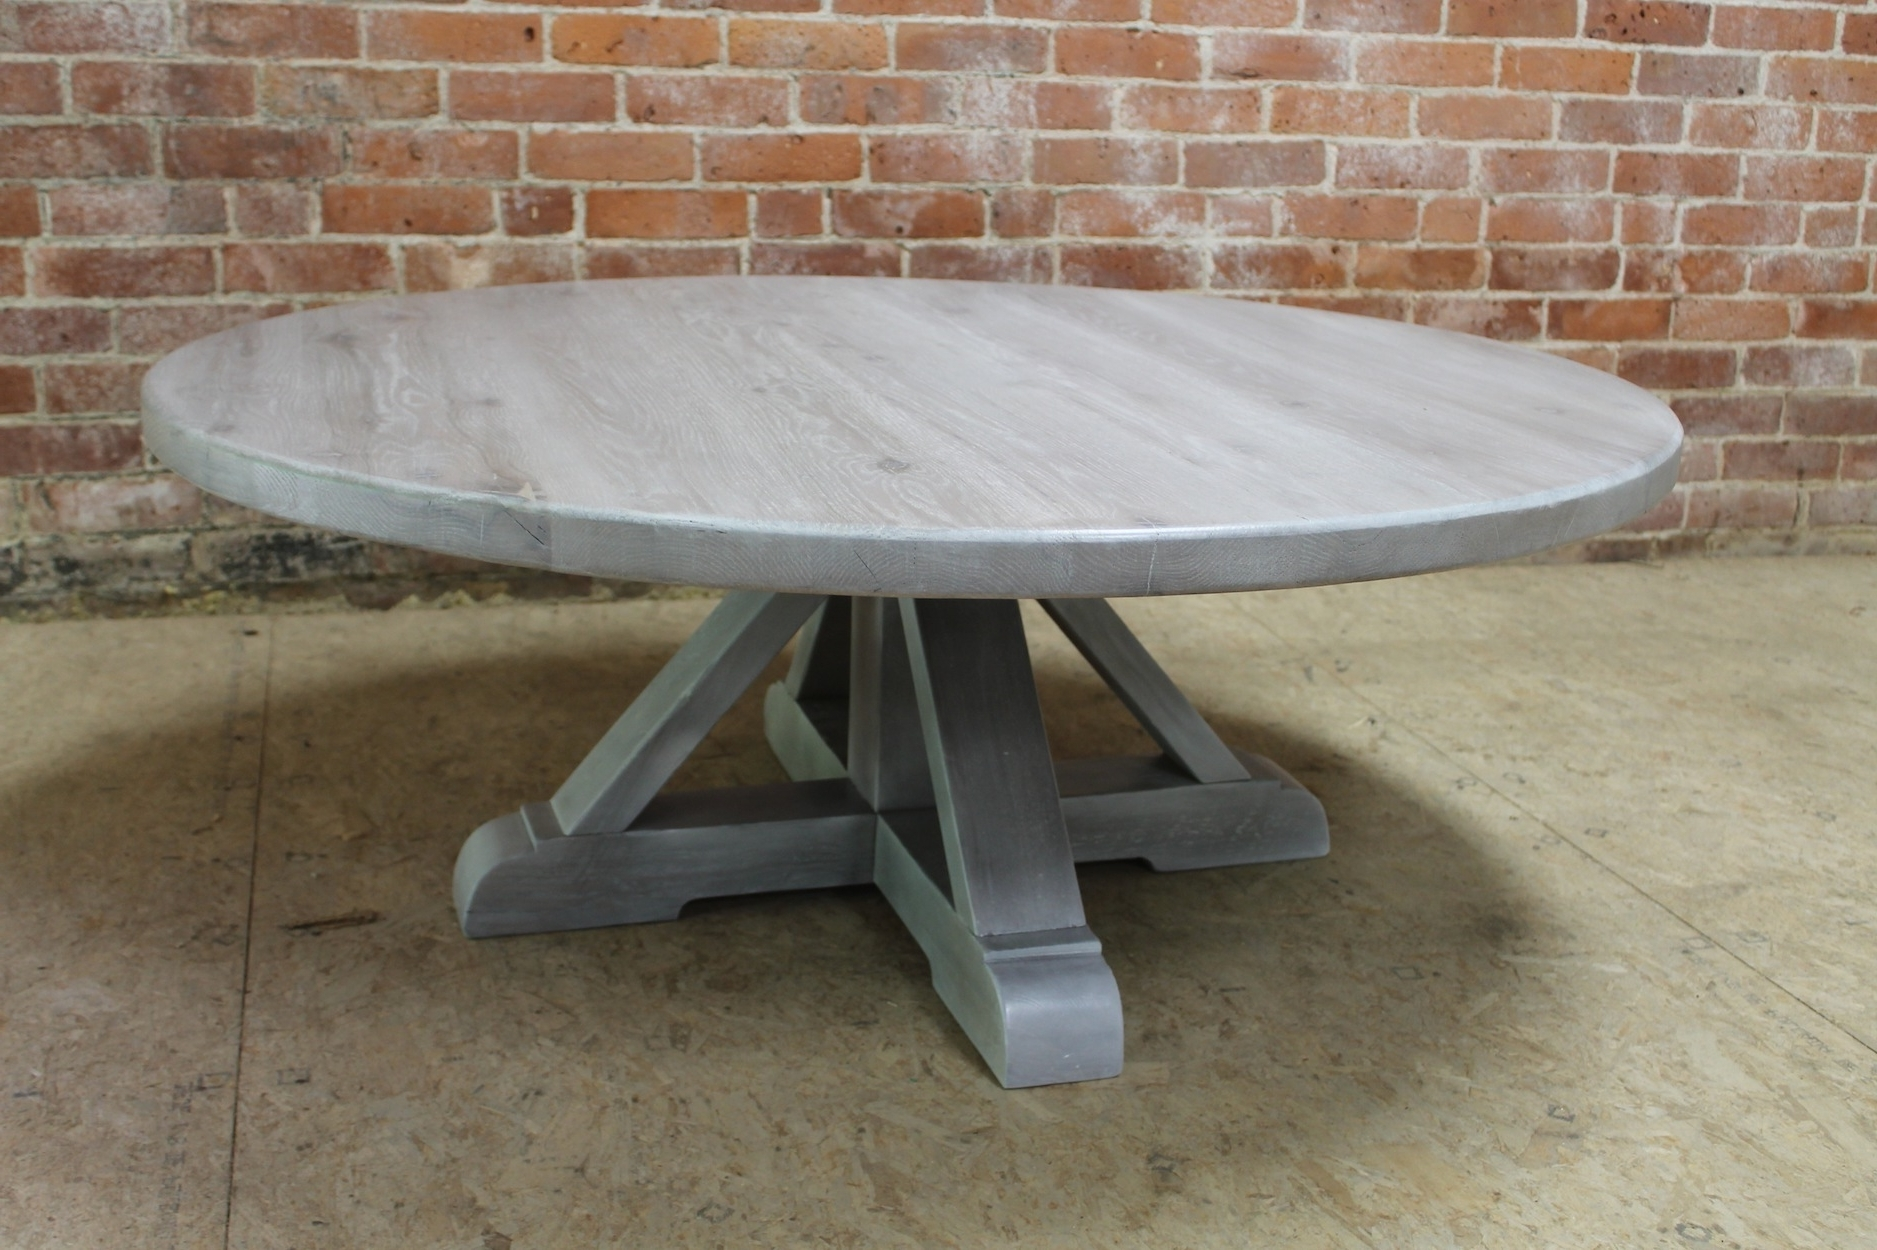 Farmhouse Coffee Tables Inside 2018 Bale Rustic Grey Round Cocktail Tables With Storage (View 4 of 20)